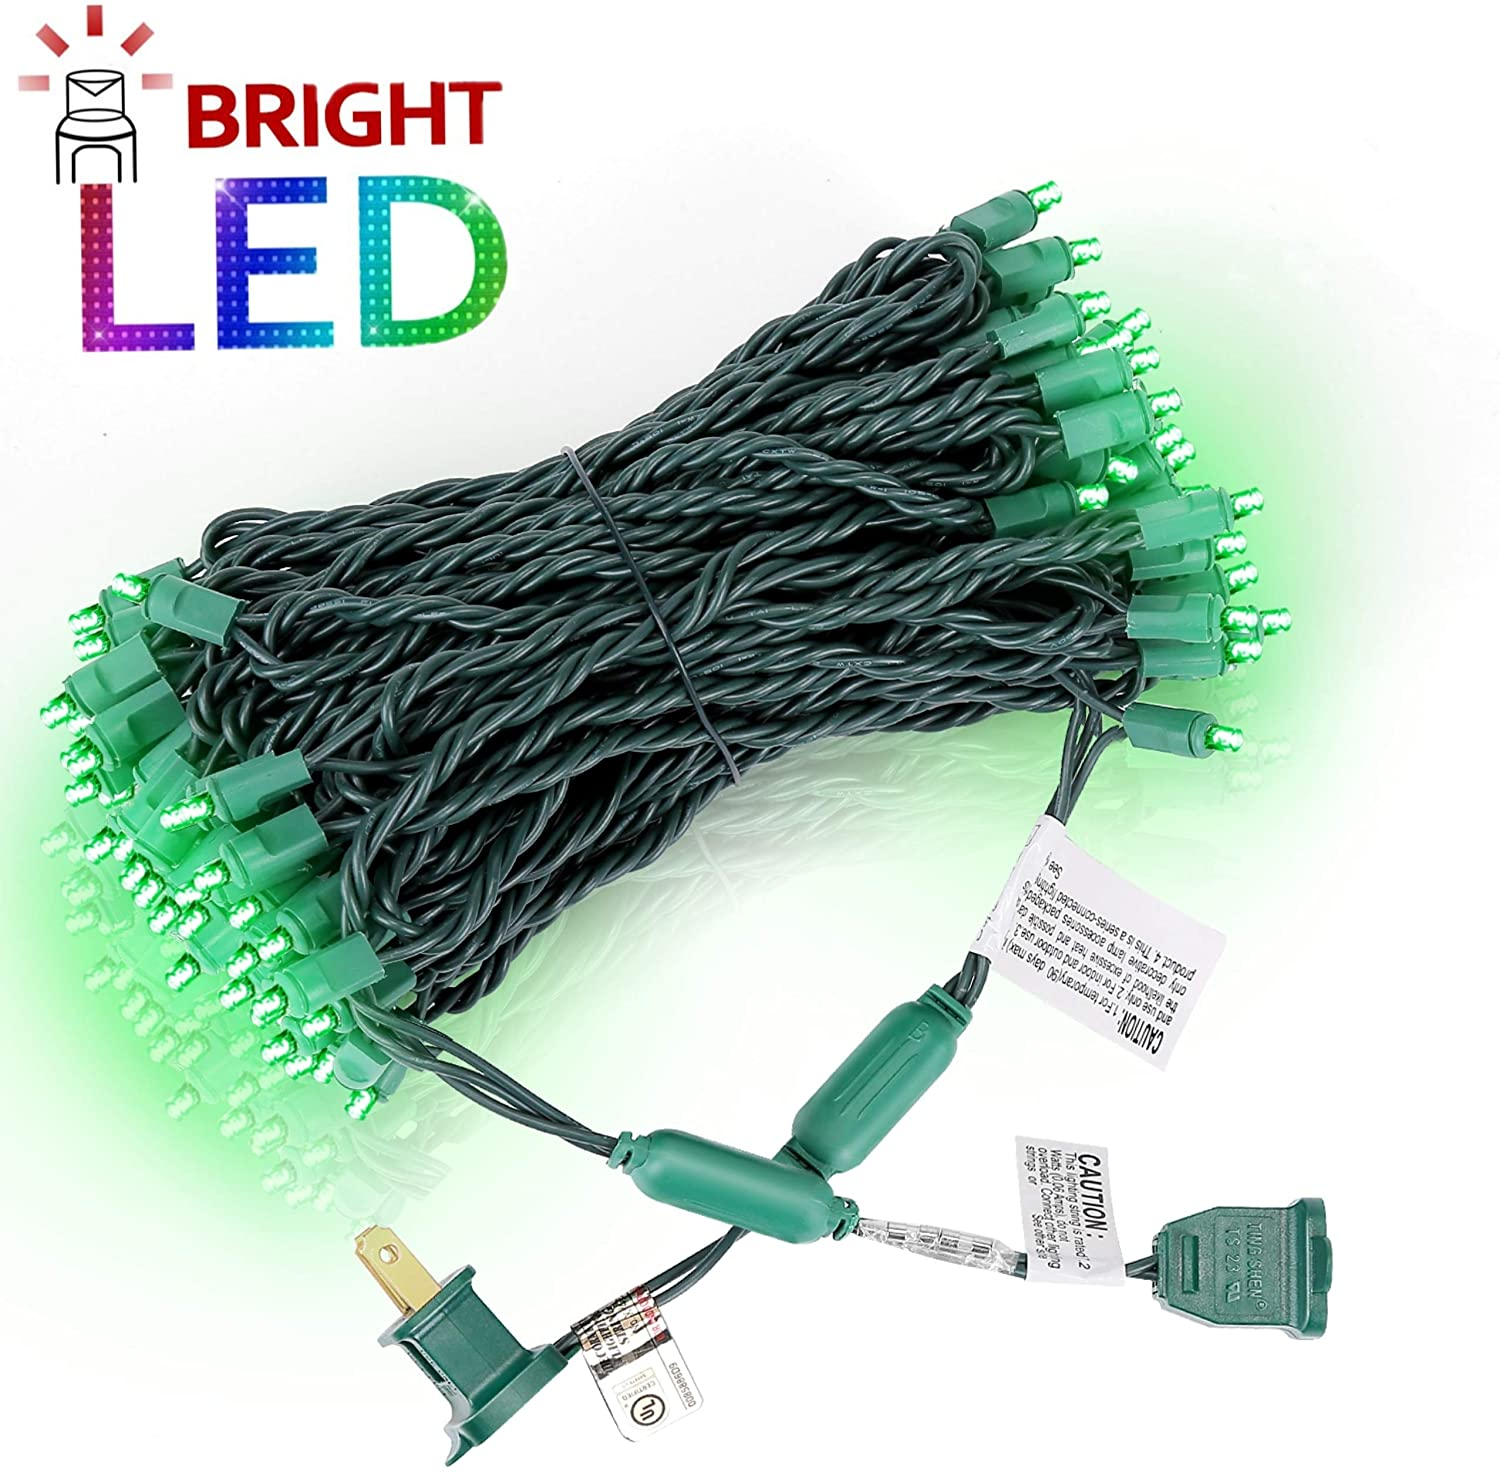 AIDDOMM LED Christmas Lights 100 Counts, for Outdoor and Indoor, Commercial Grade, Green Light, Green Wire, 50ft, UL Listed